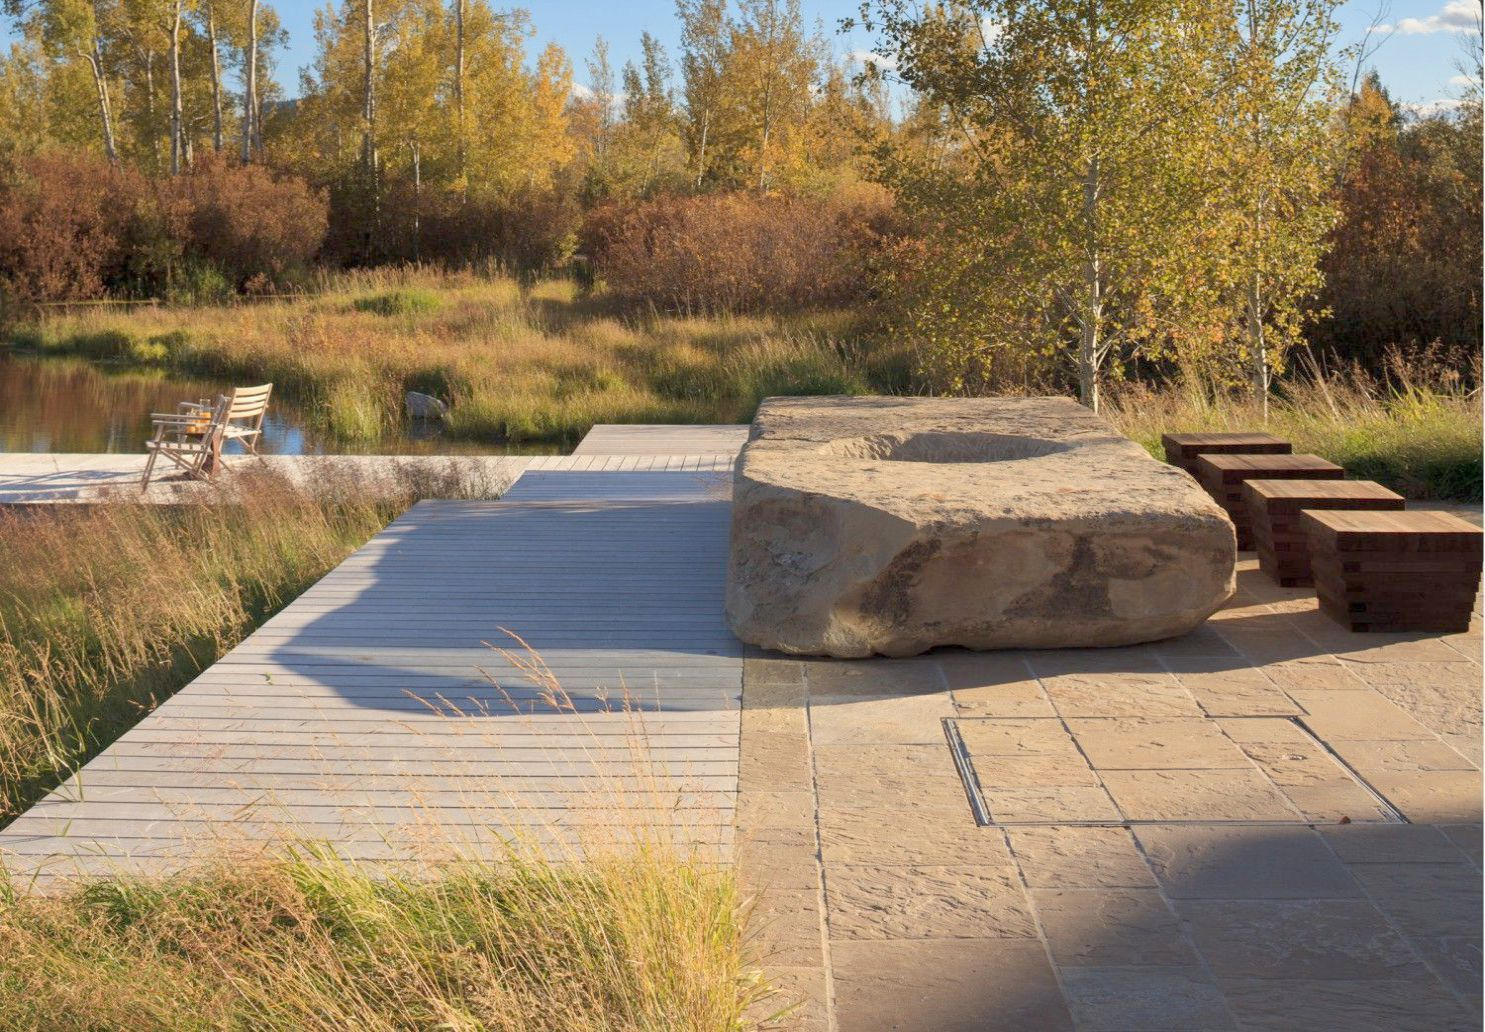 University Of Guelph Landscape Design Online Course either ...